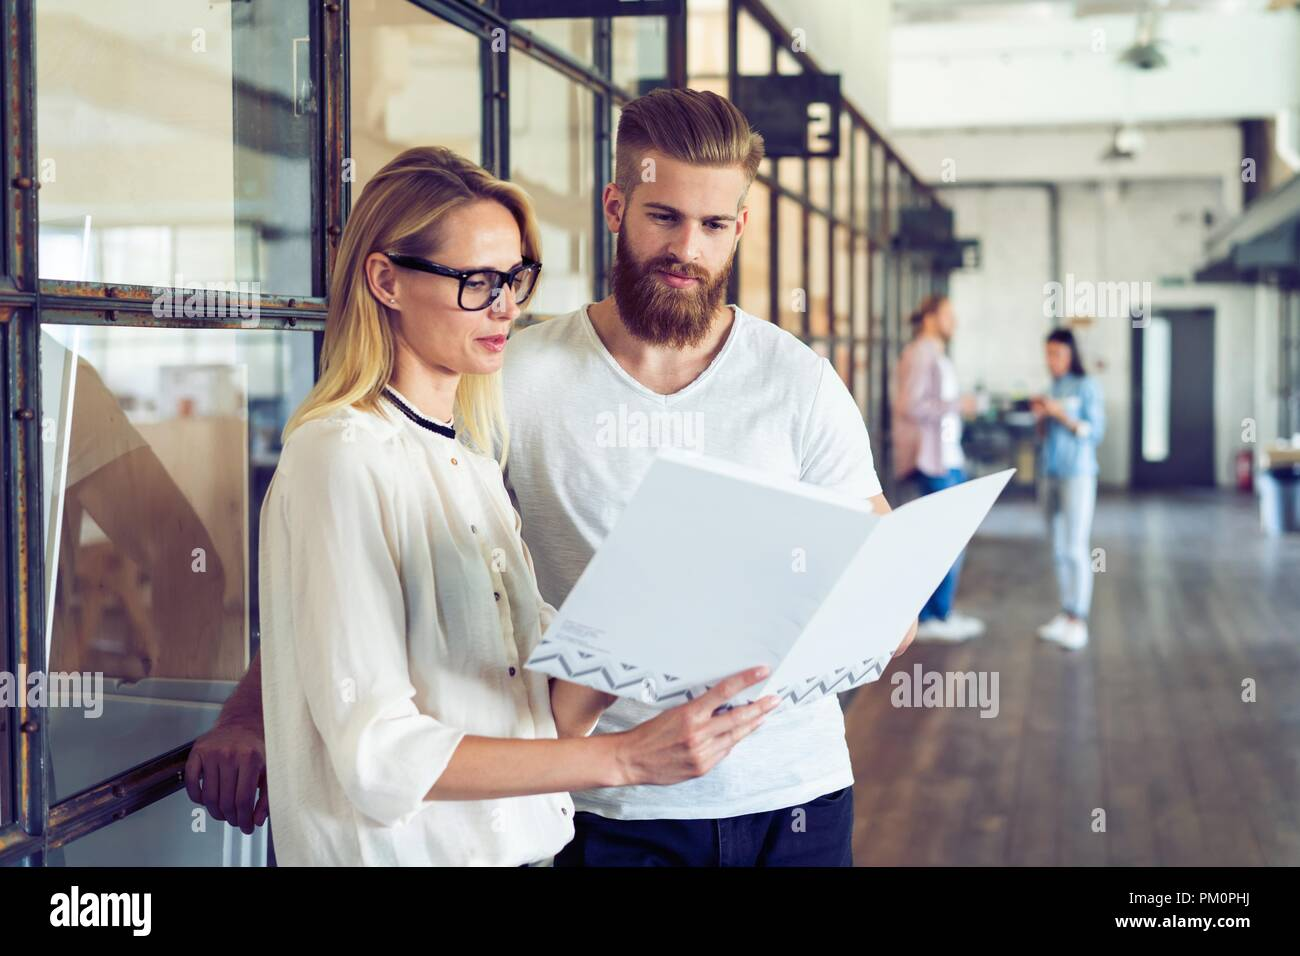 Sharing fresh ideas. Group of young business people in smart casual wear talking and smiling while standing in the office hallway. - Stock Image